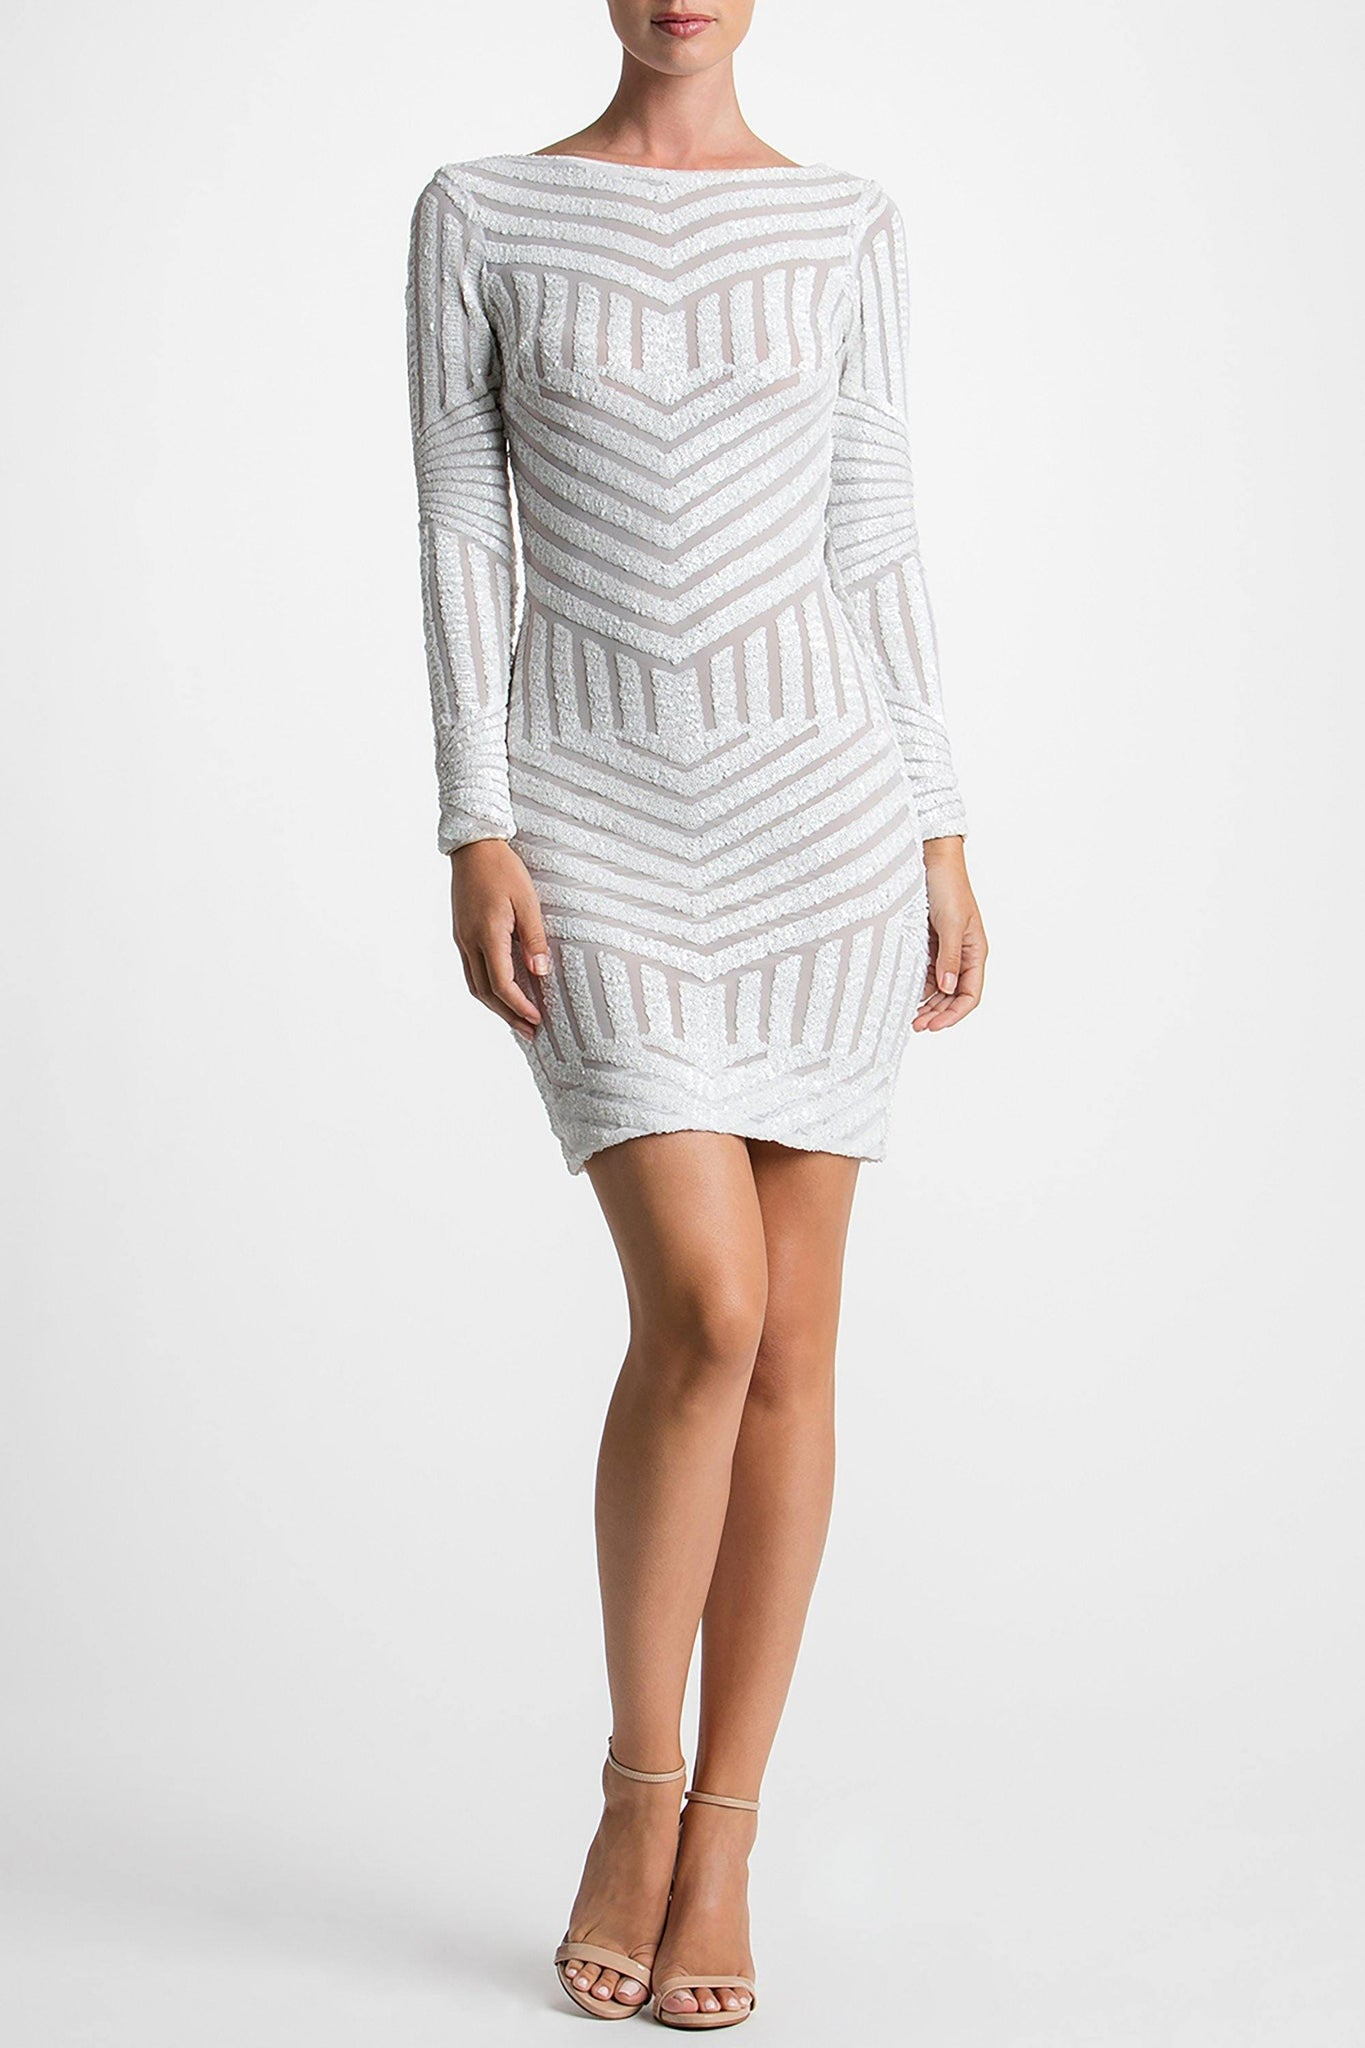 Lola Geometric Stripe Sequin Mini - FINAL SALE